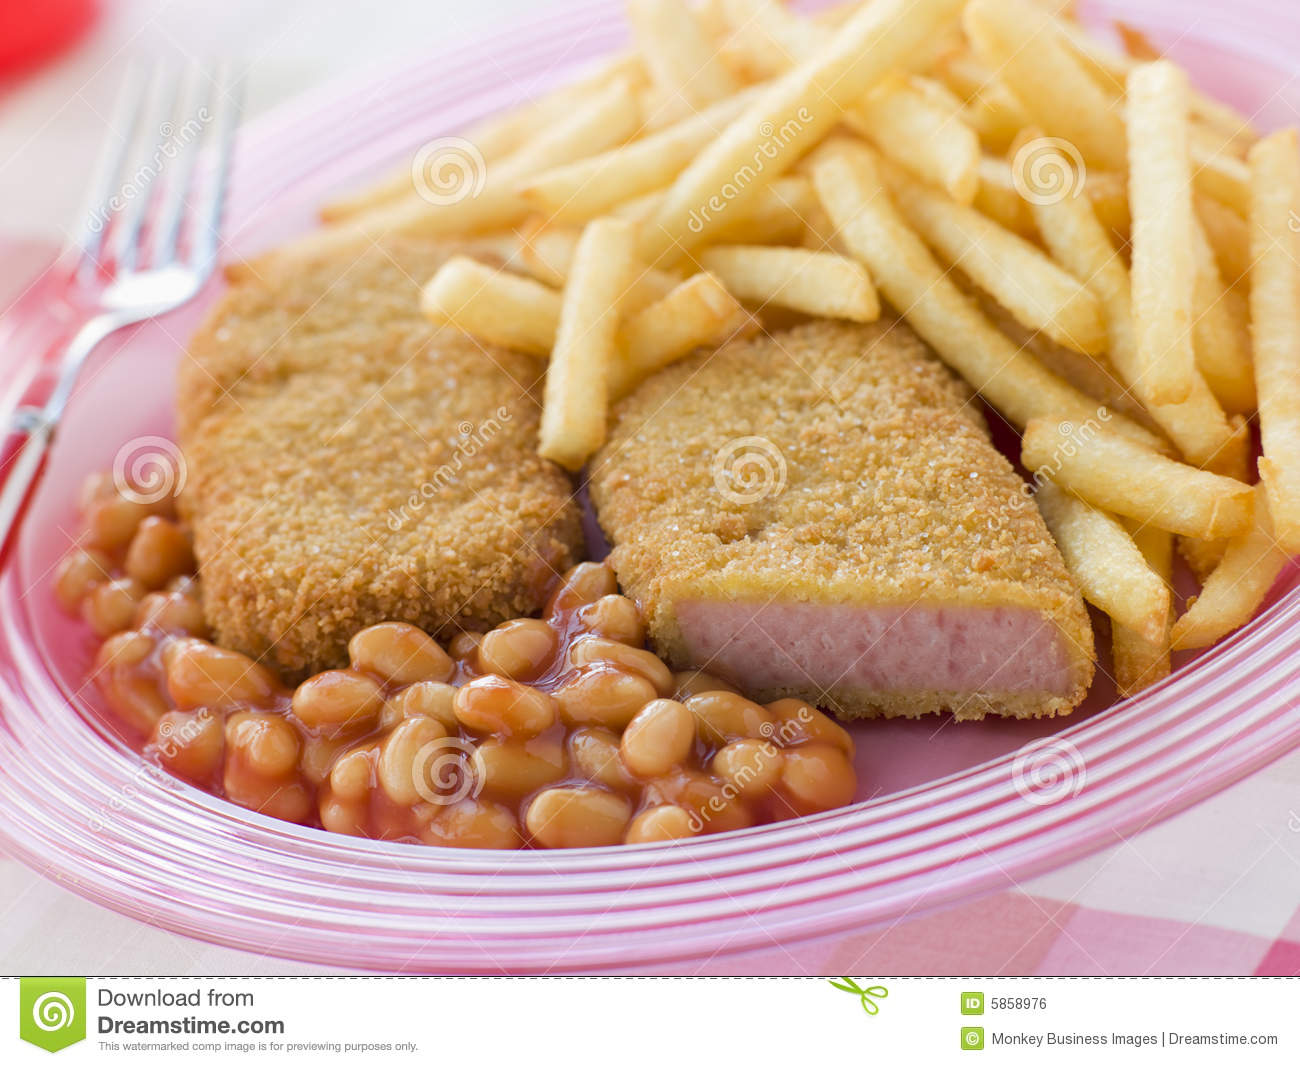 Bread Crumbed Luncheon Meat With Baked Beans Royalty Free